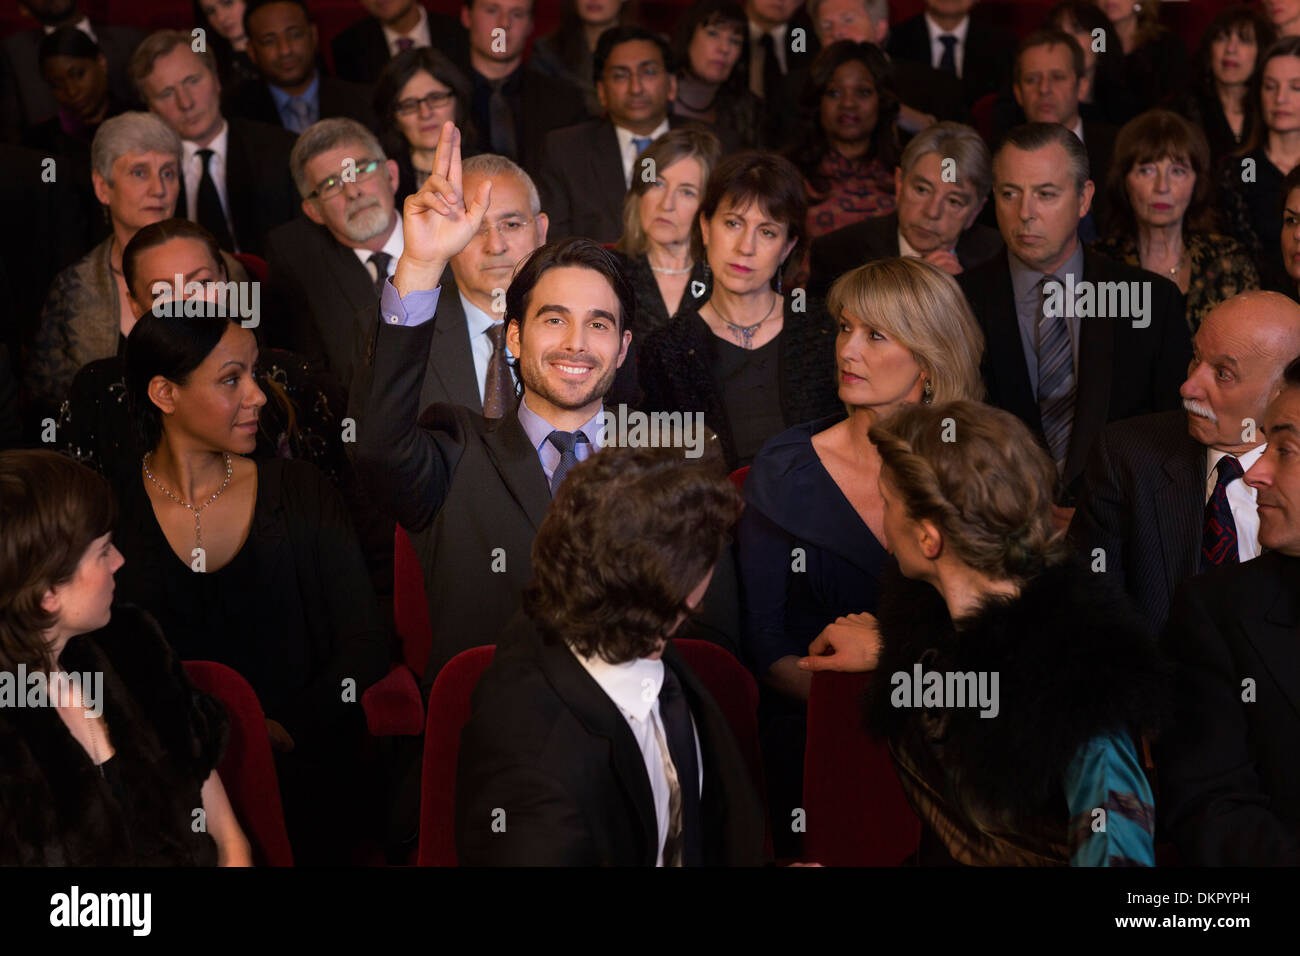 Man raising hand in theater audience - Stock Image